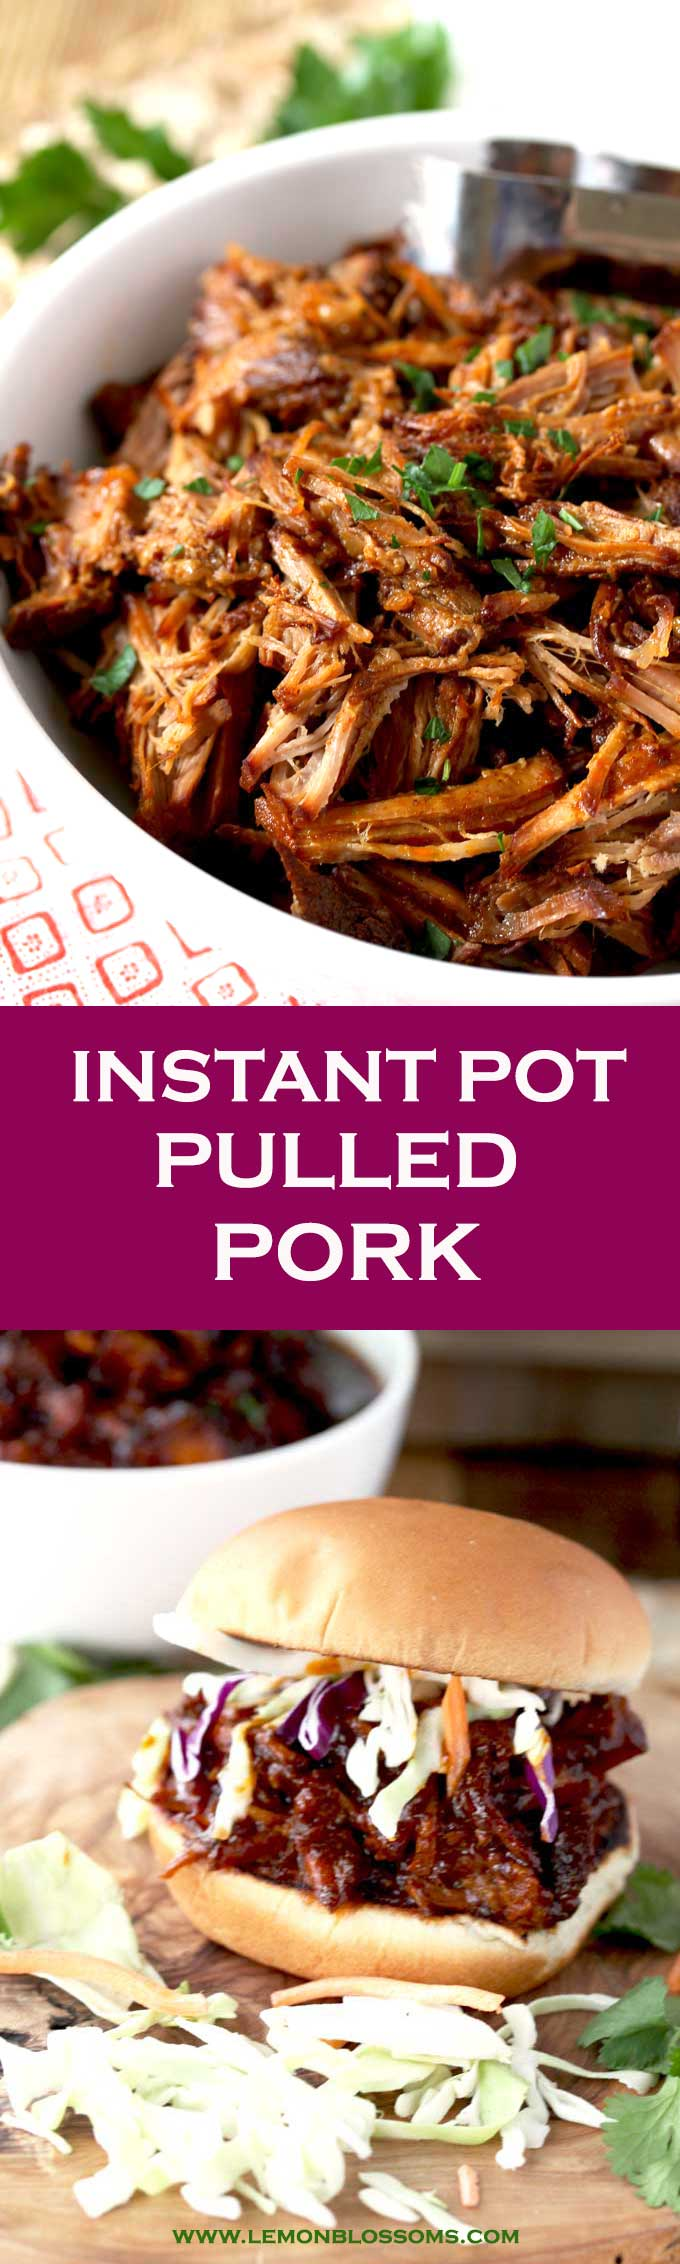 This Instant Pot Pulled Pork is incredibly tender, flavorful, easy and very quick to make with the help of a pressure cooker (Instapot). This BBQ pulled pork recipe is perfect for a weeknight meal, cookouts, summer parties and holidays. #instantpot #pulledpork #recipe #easy #pressurecooker #BBQ